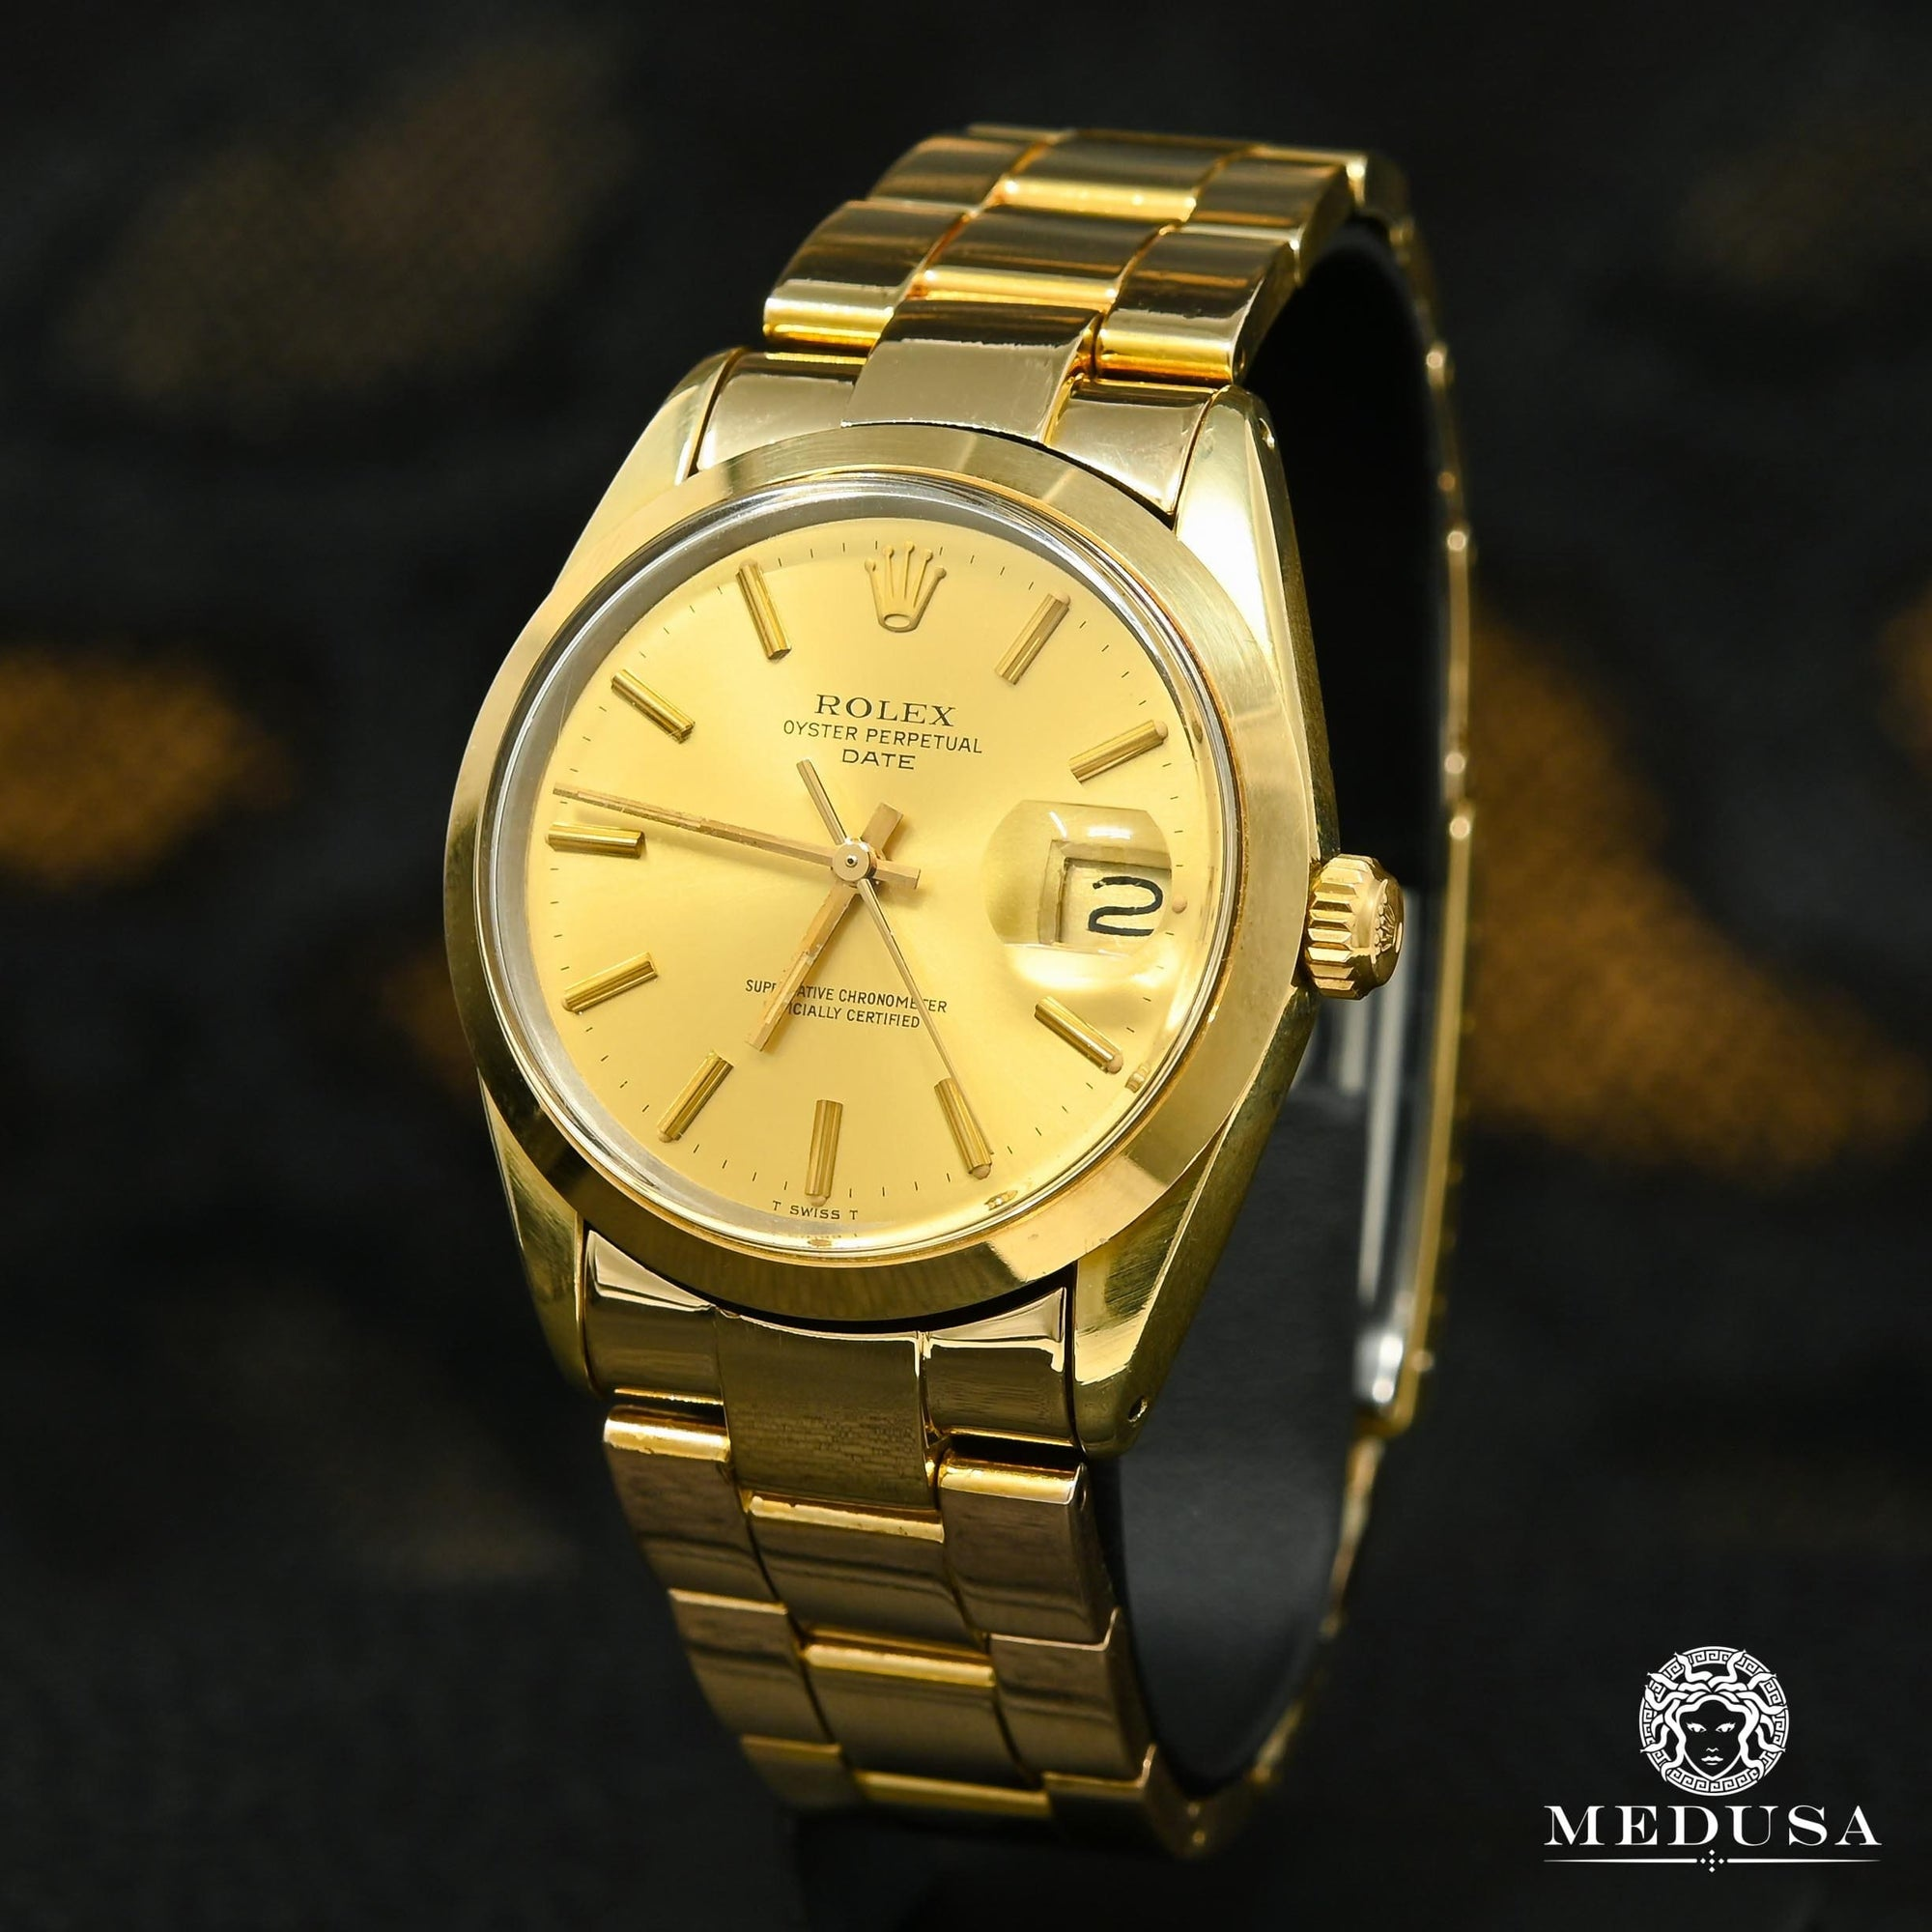 Rolex Oyster Perpetual Date 34mm - Gold Vintage